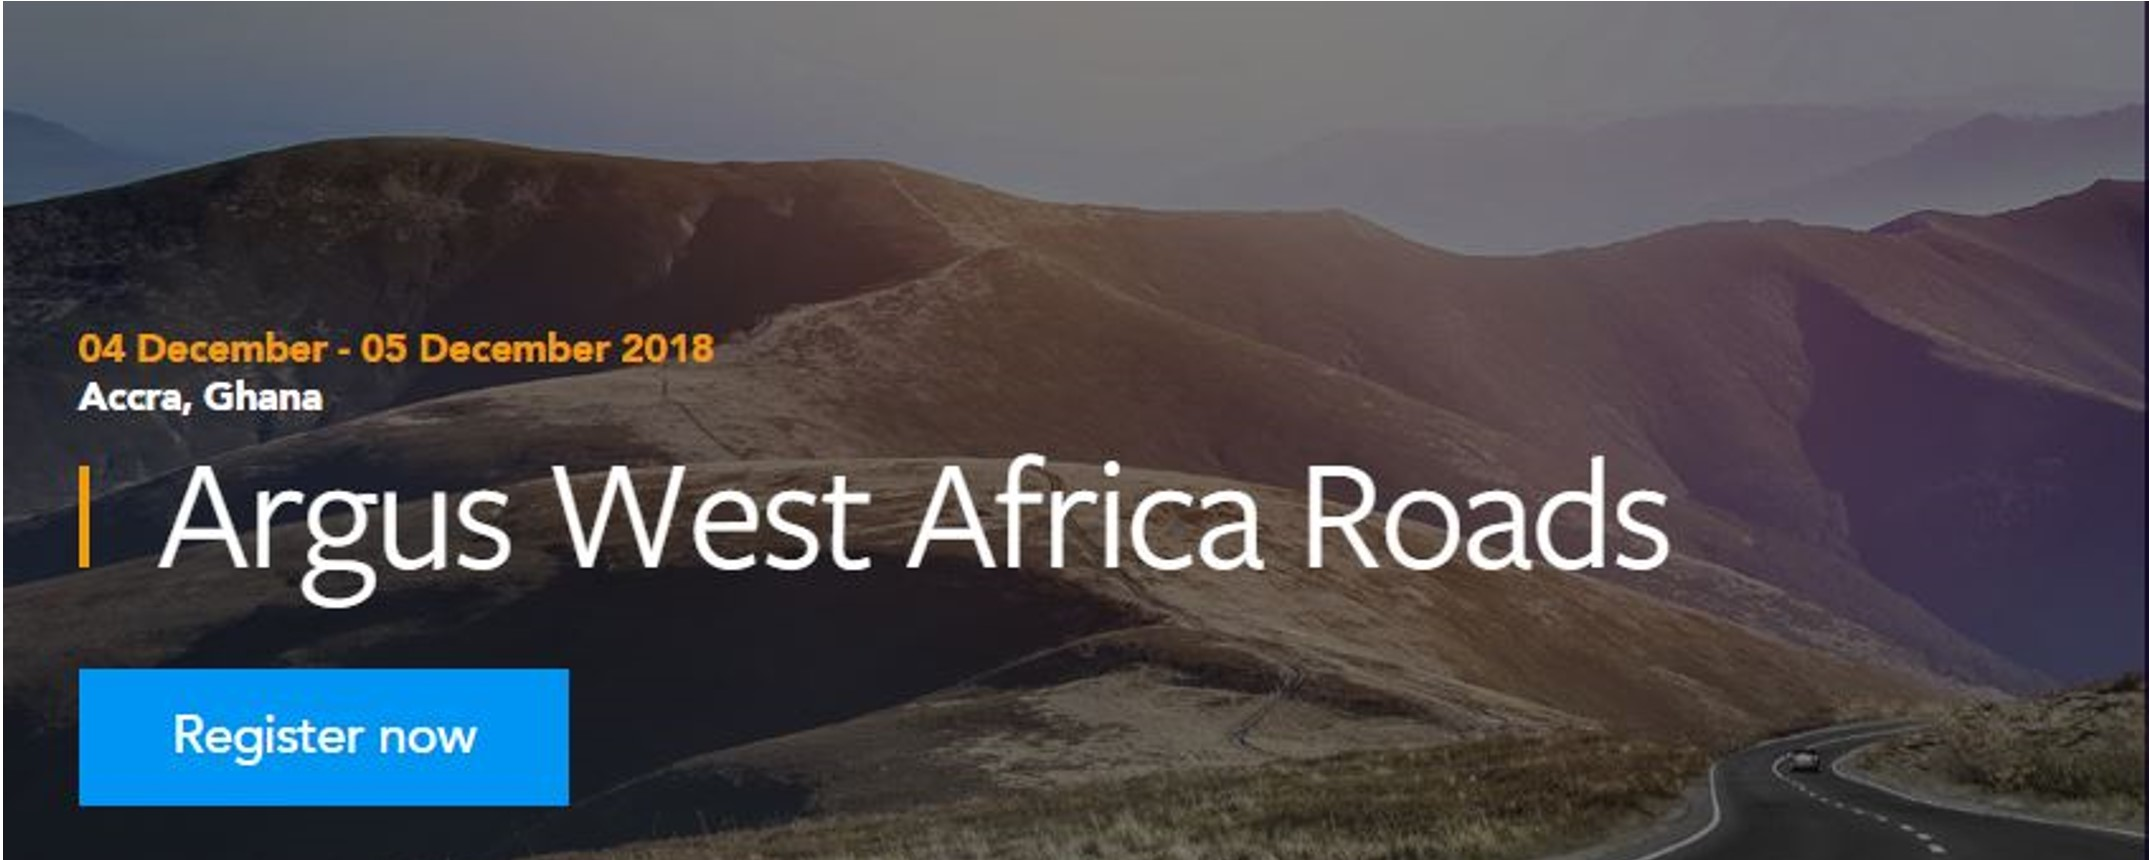 Argus - Argus West Africa Roads 2018 Movemeback African event cover image